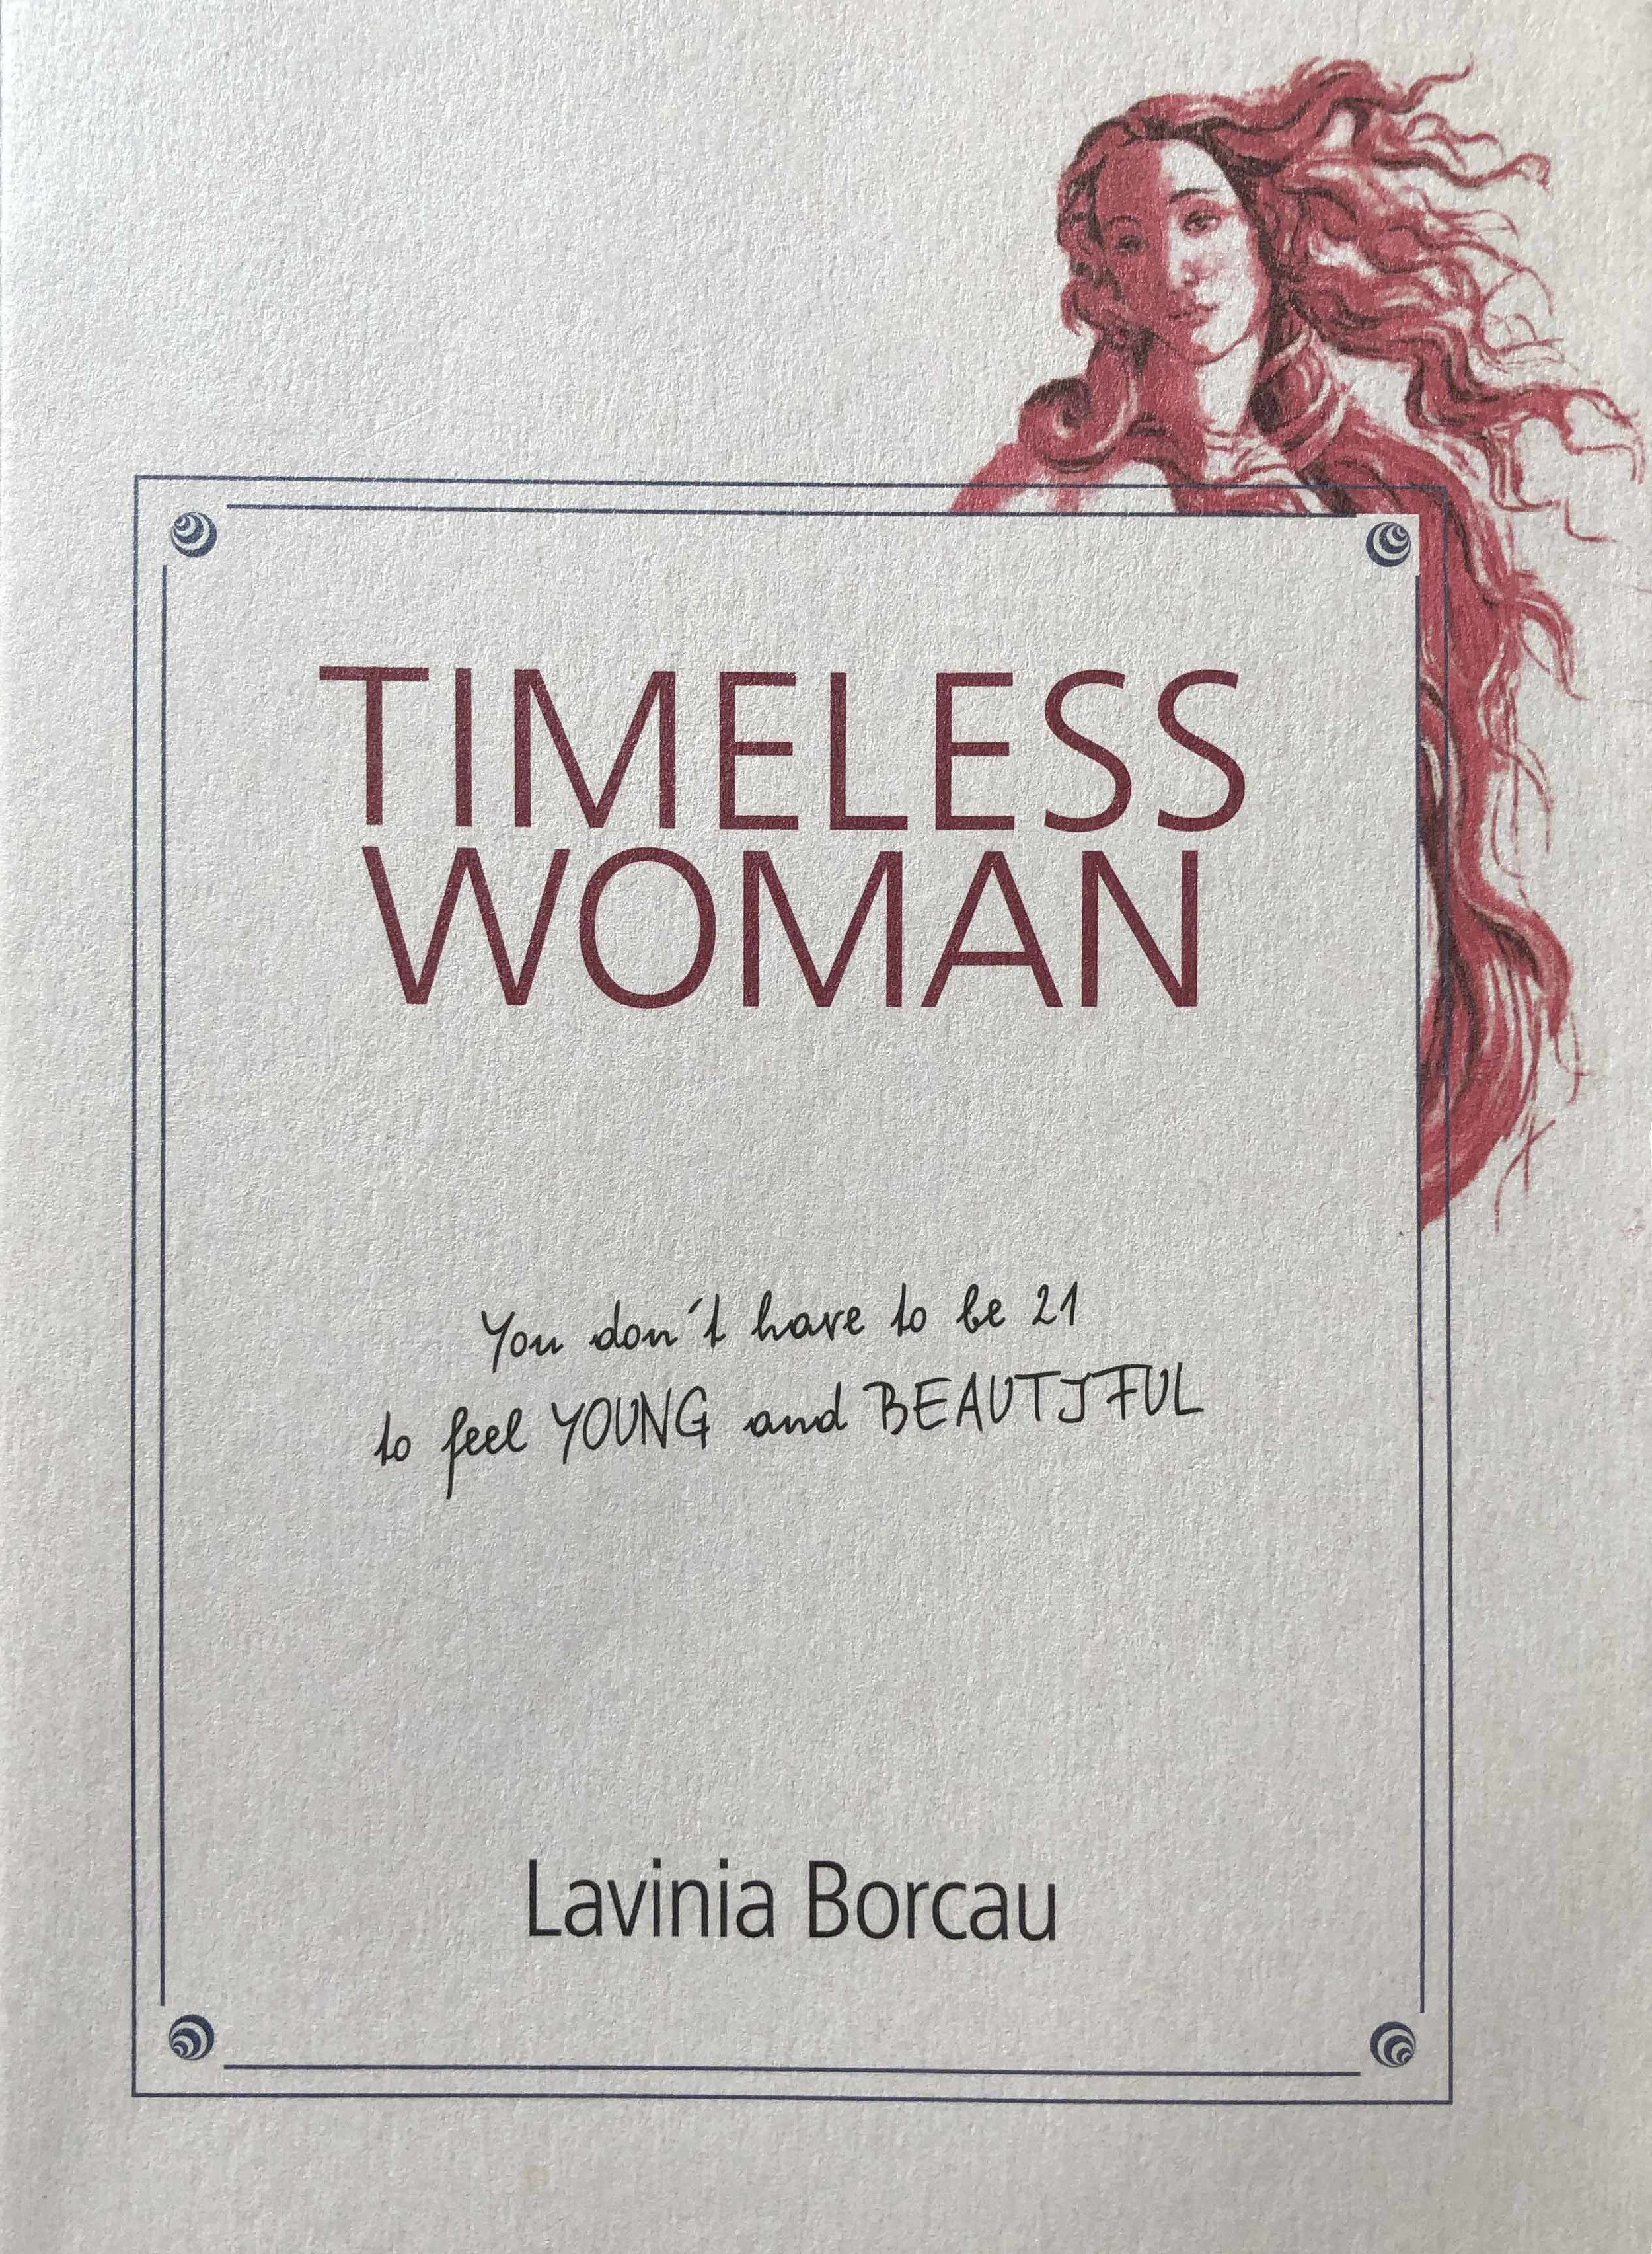 timeless-woman-book-cover.jpg